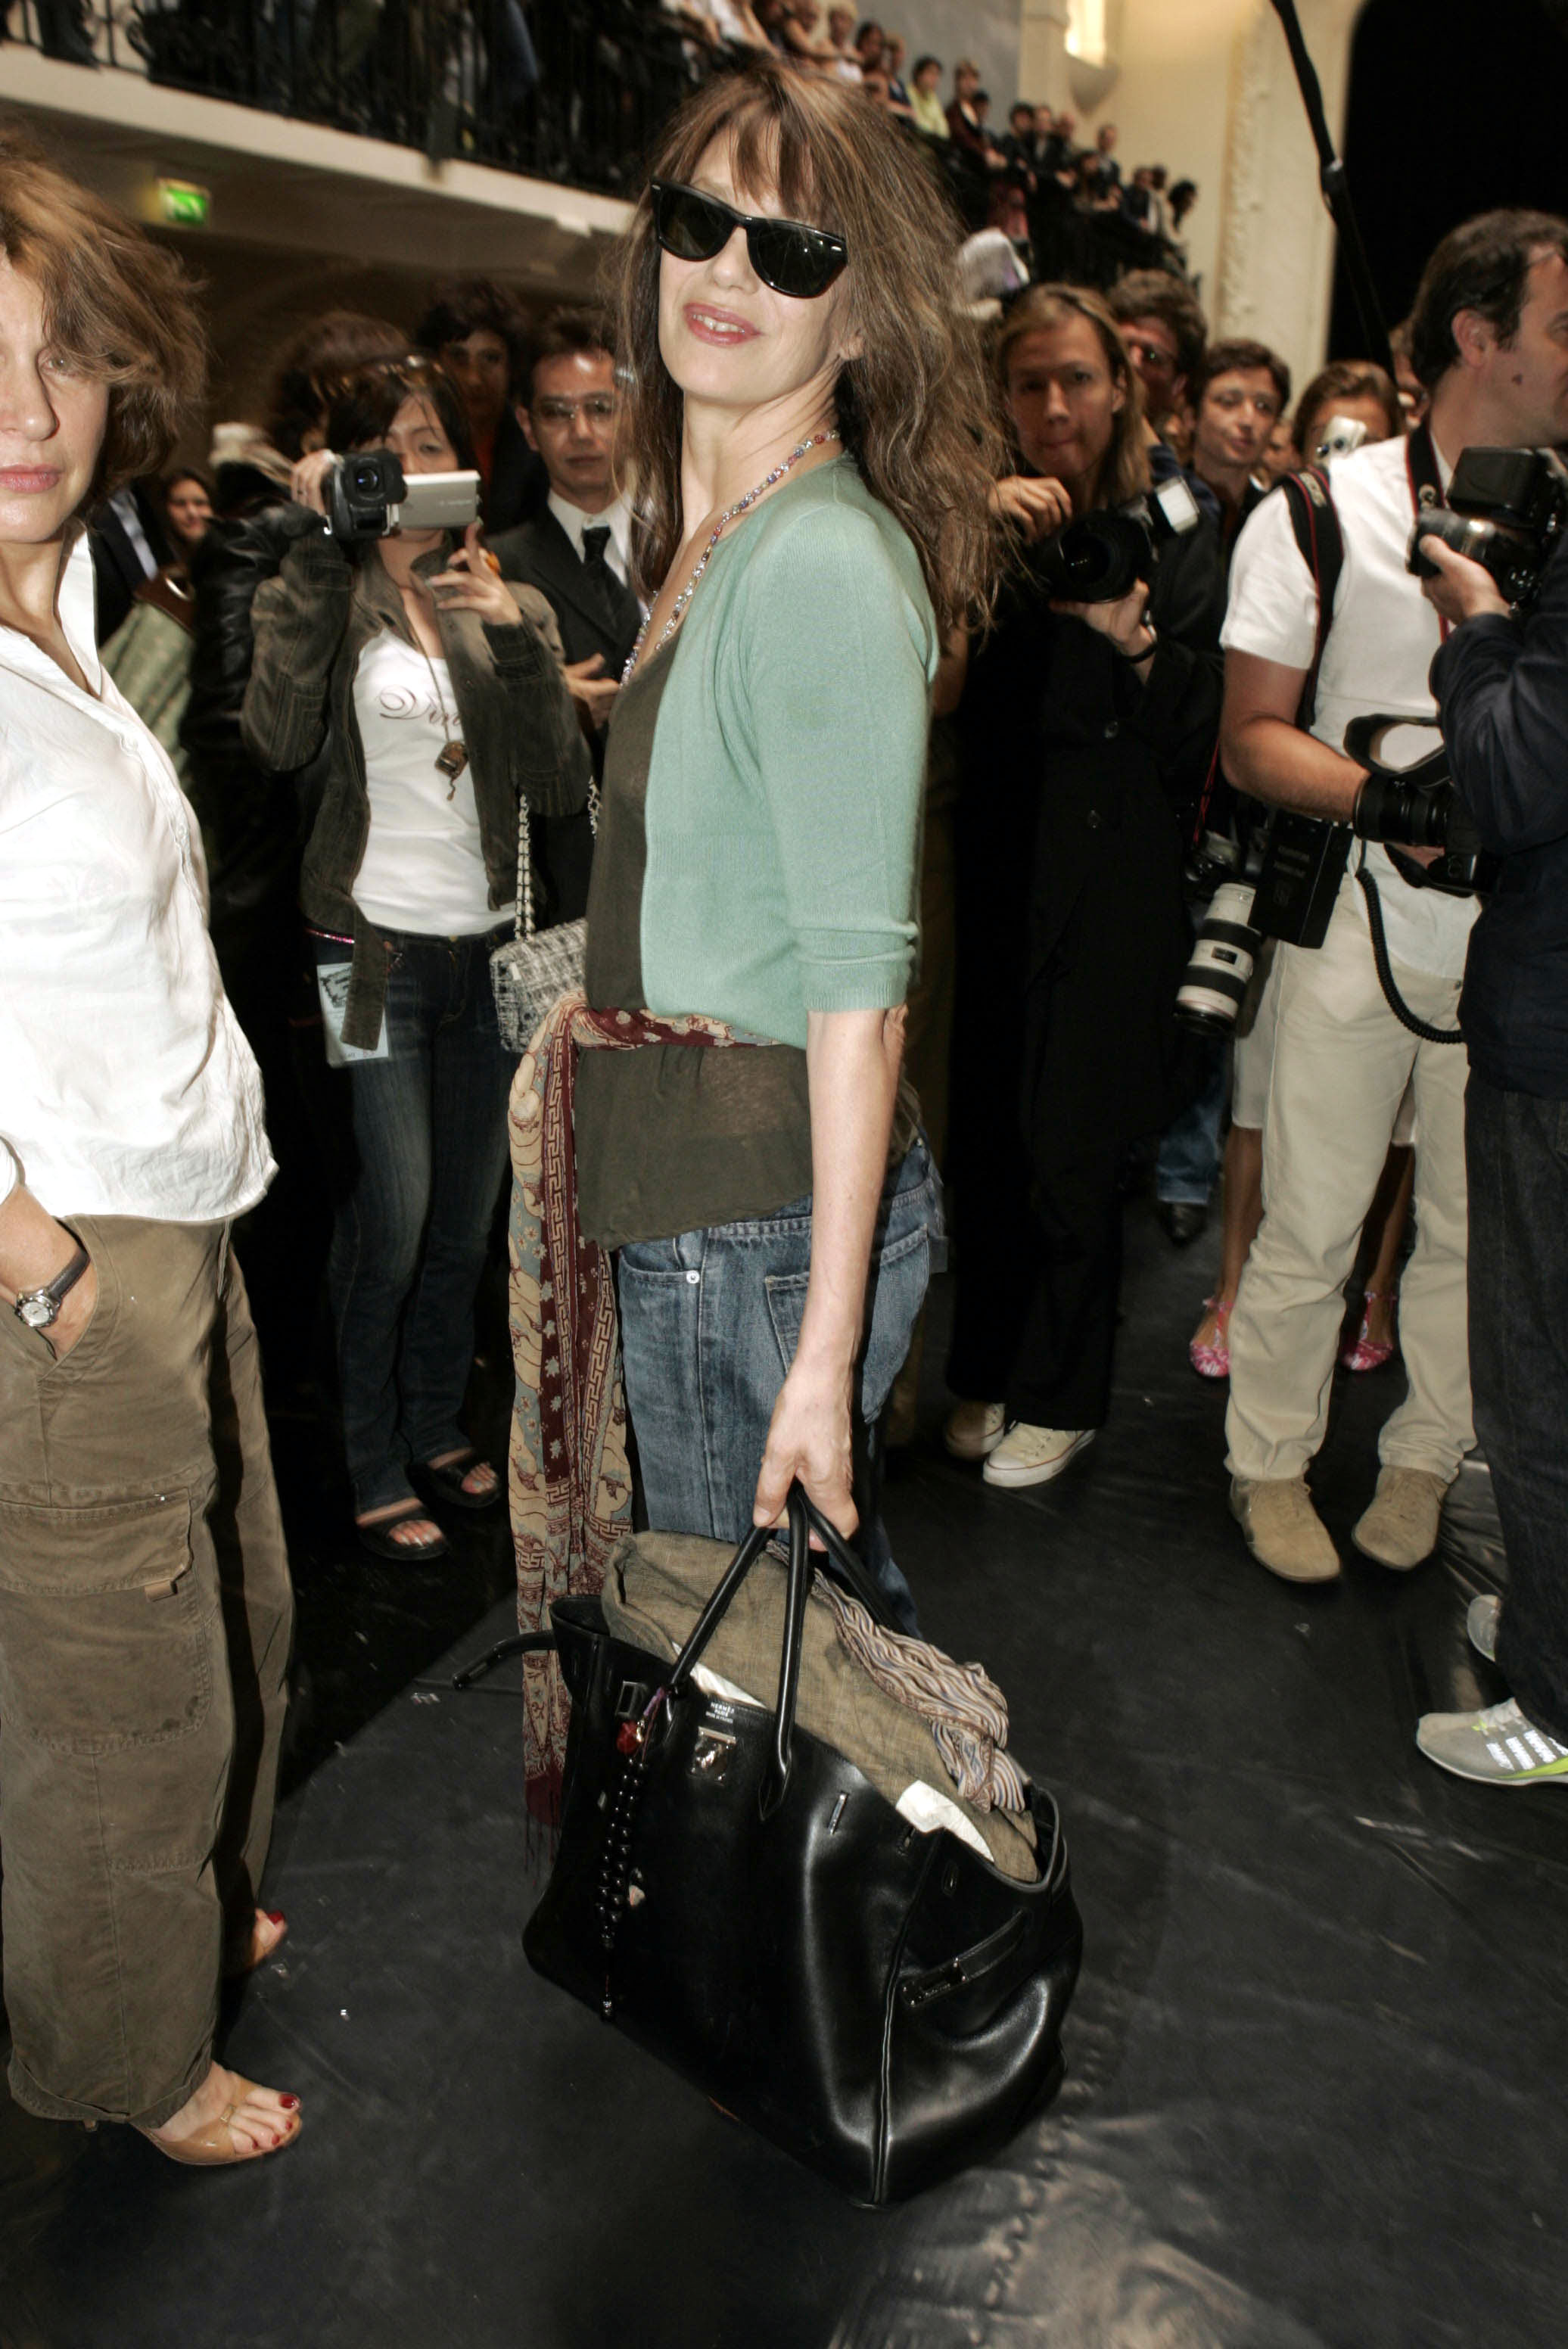 PARIS - JULY 8:  Jane Birkin attends the Jean Paul Gaultier Spring/Summer 2005 Fashion Show during Paris Fashion Week on July 8, 2004 in Paris, France. (Photo by Michel Dufour/WireImage)